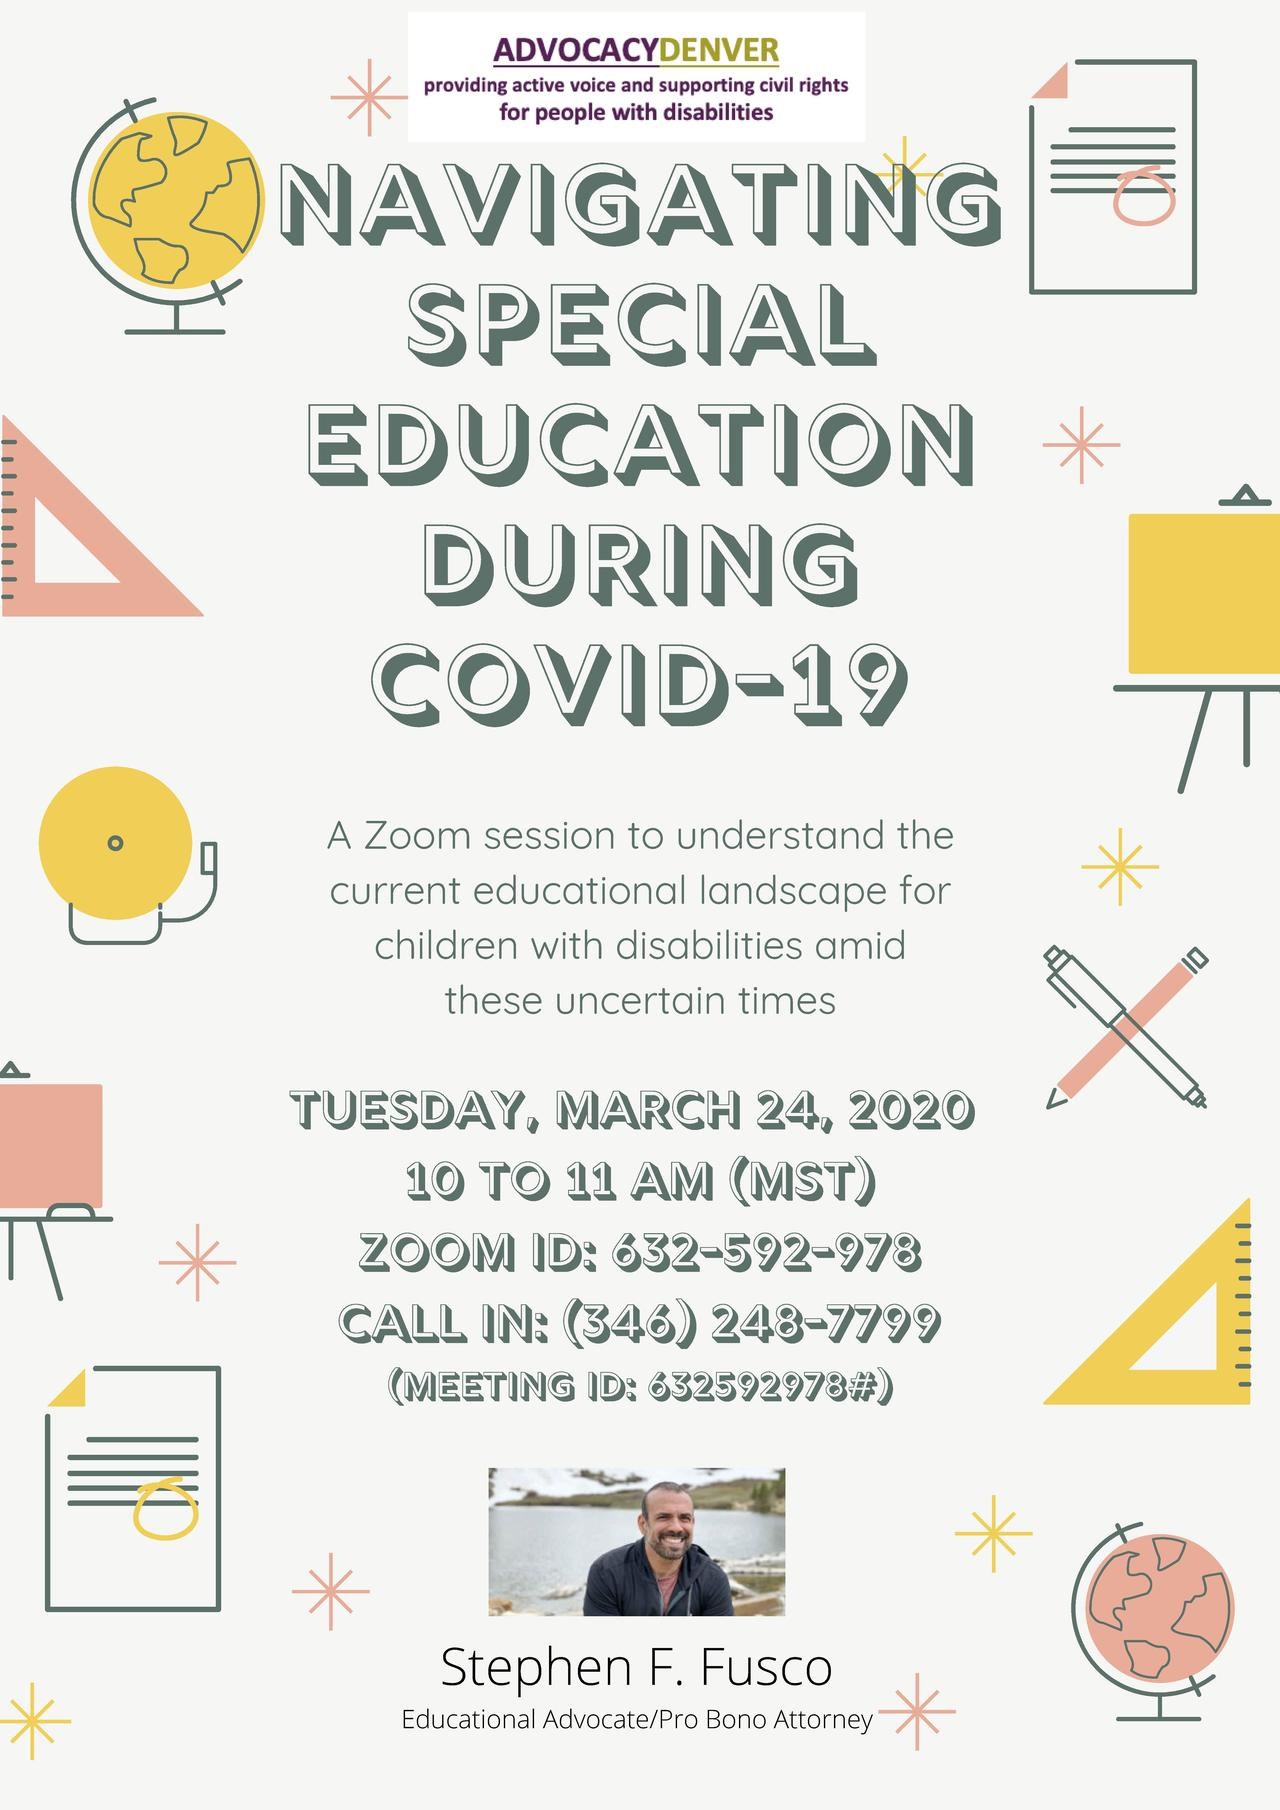 Webinar: Navigating Special Education During COVID-19, Tuesday March 24th 2020